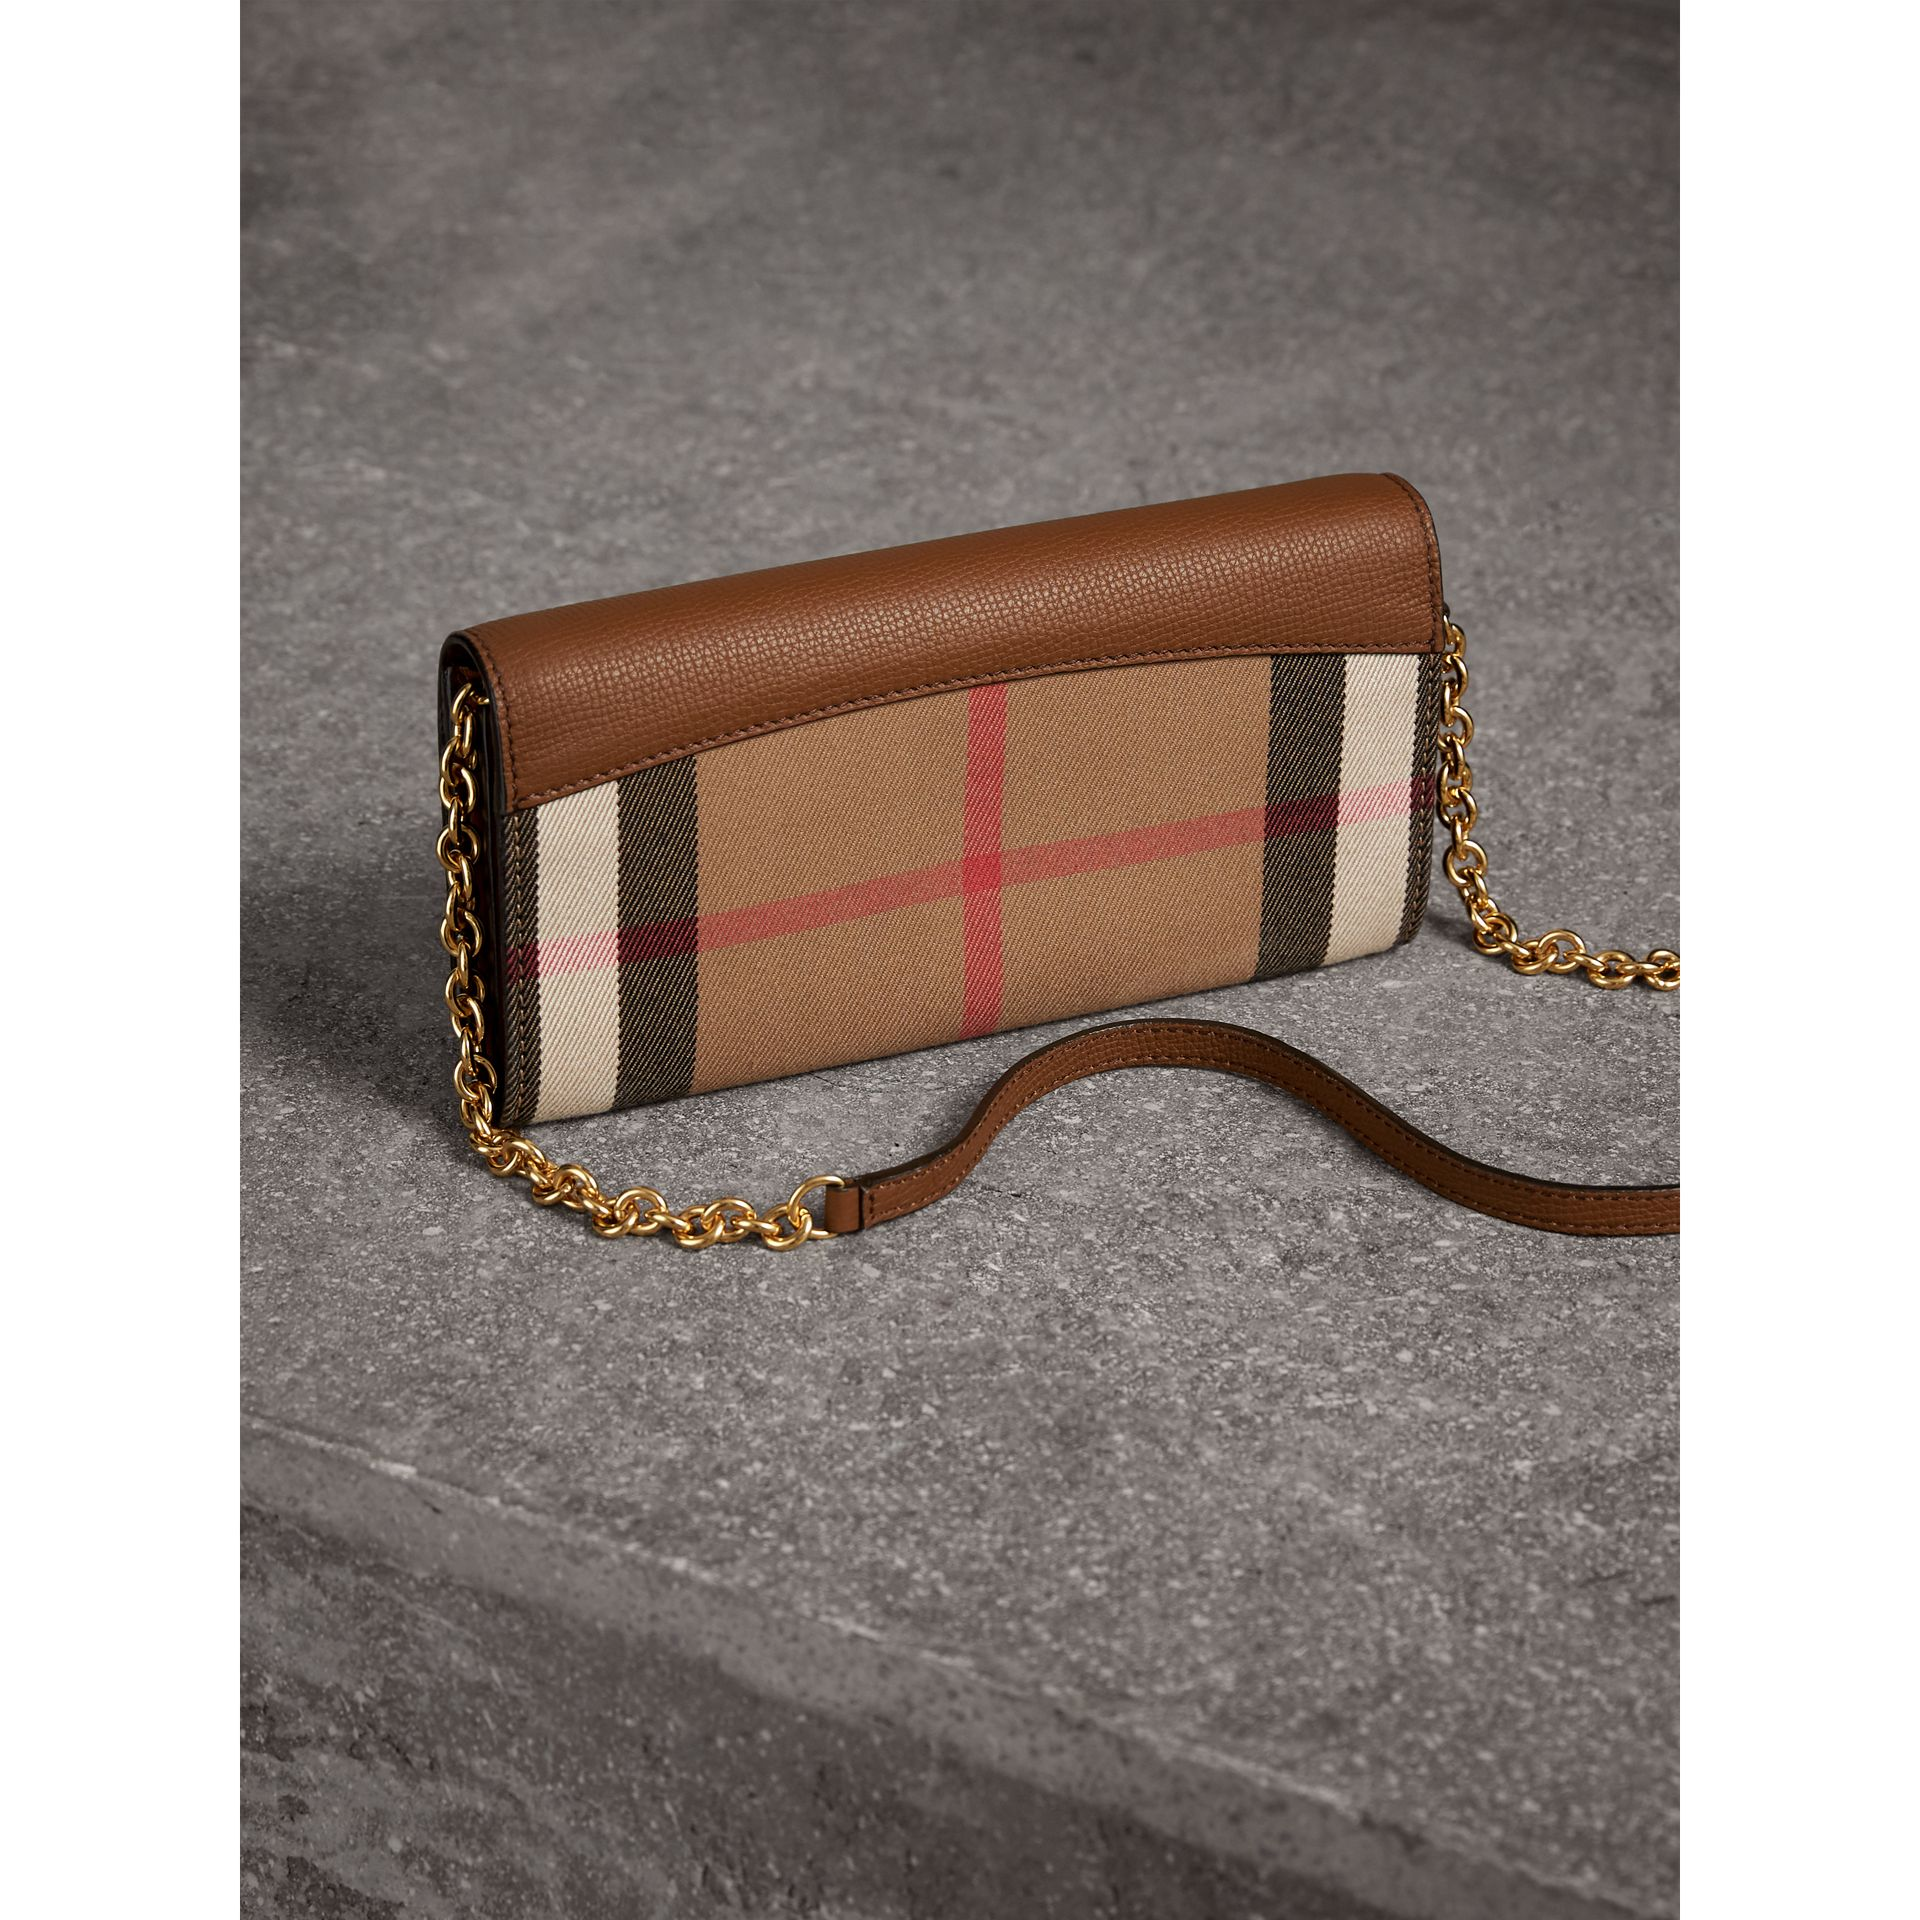 House Check and Leather Wallet with Chain in Tan - Women | Burberry Australia - gallery image 4